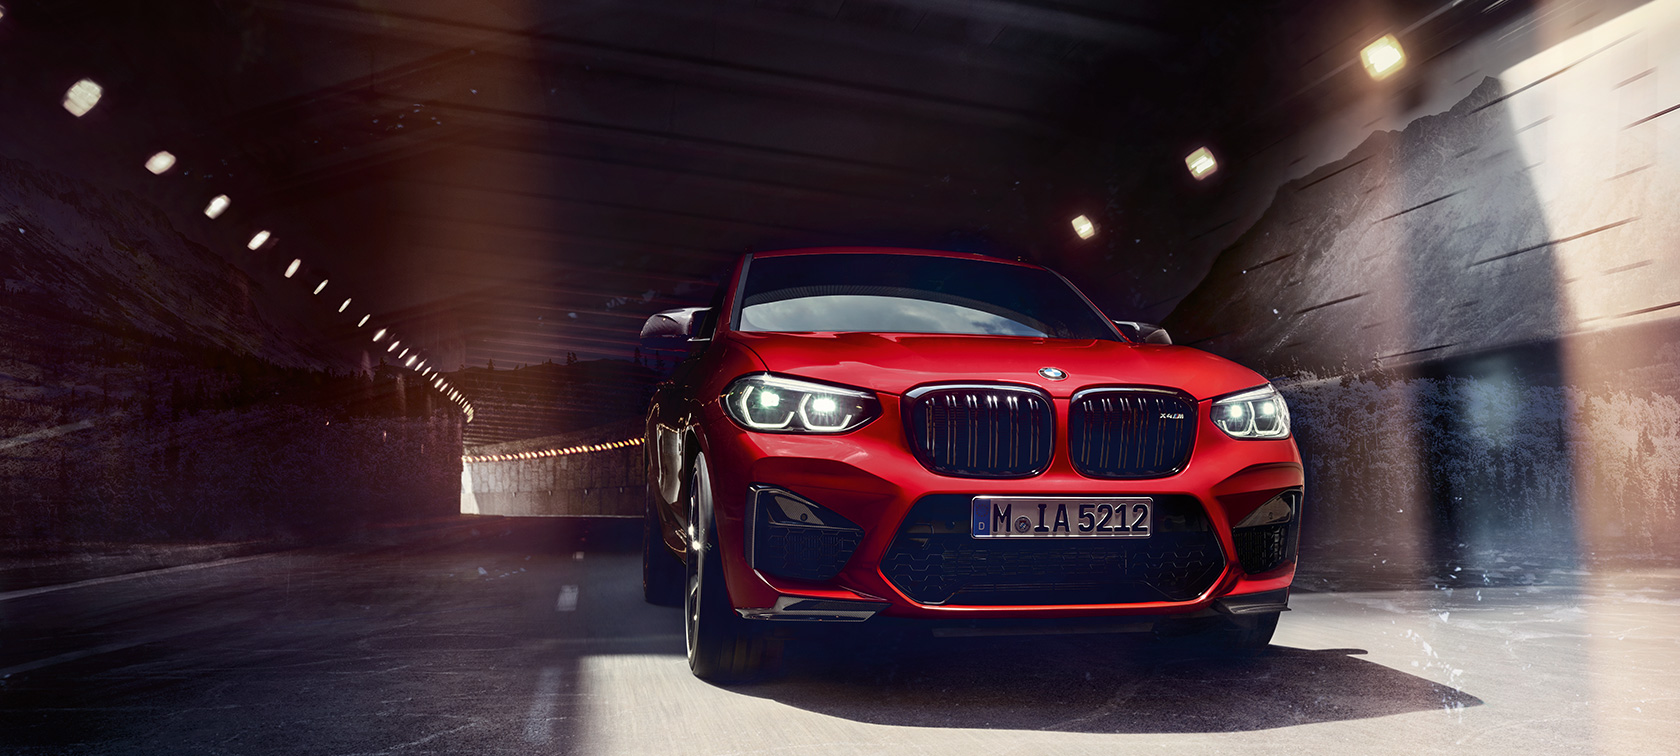 BMW X4 M, technical data